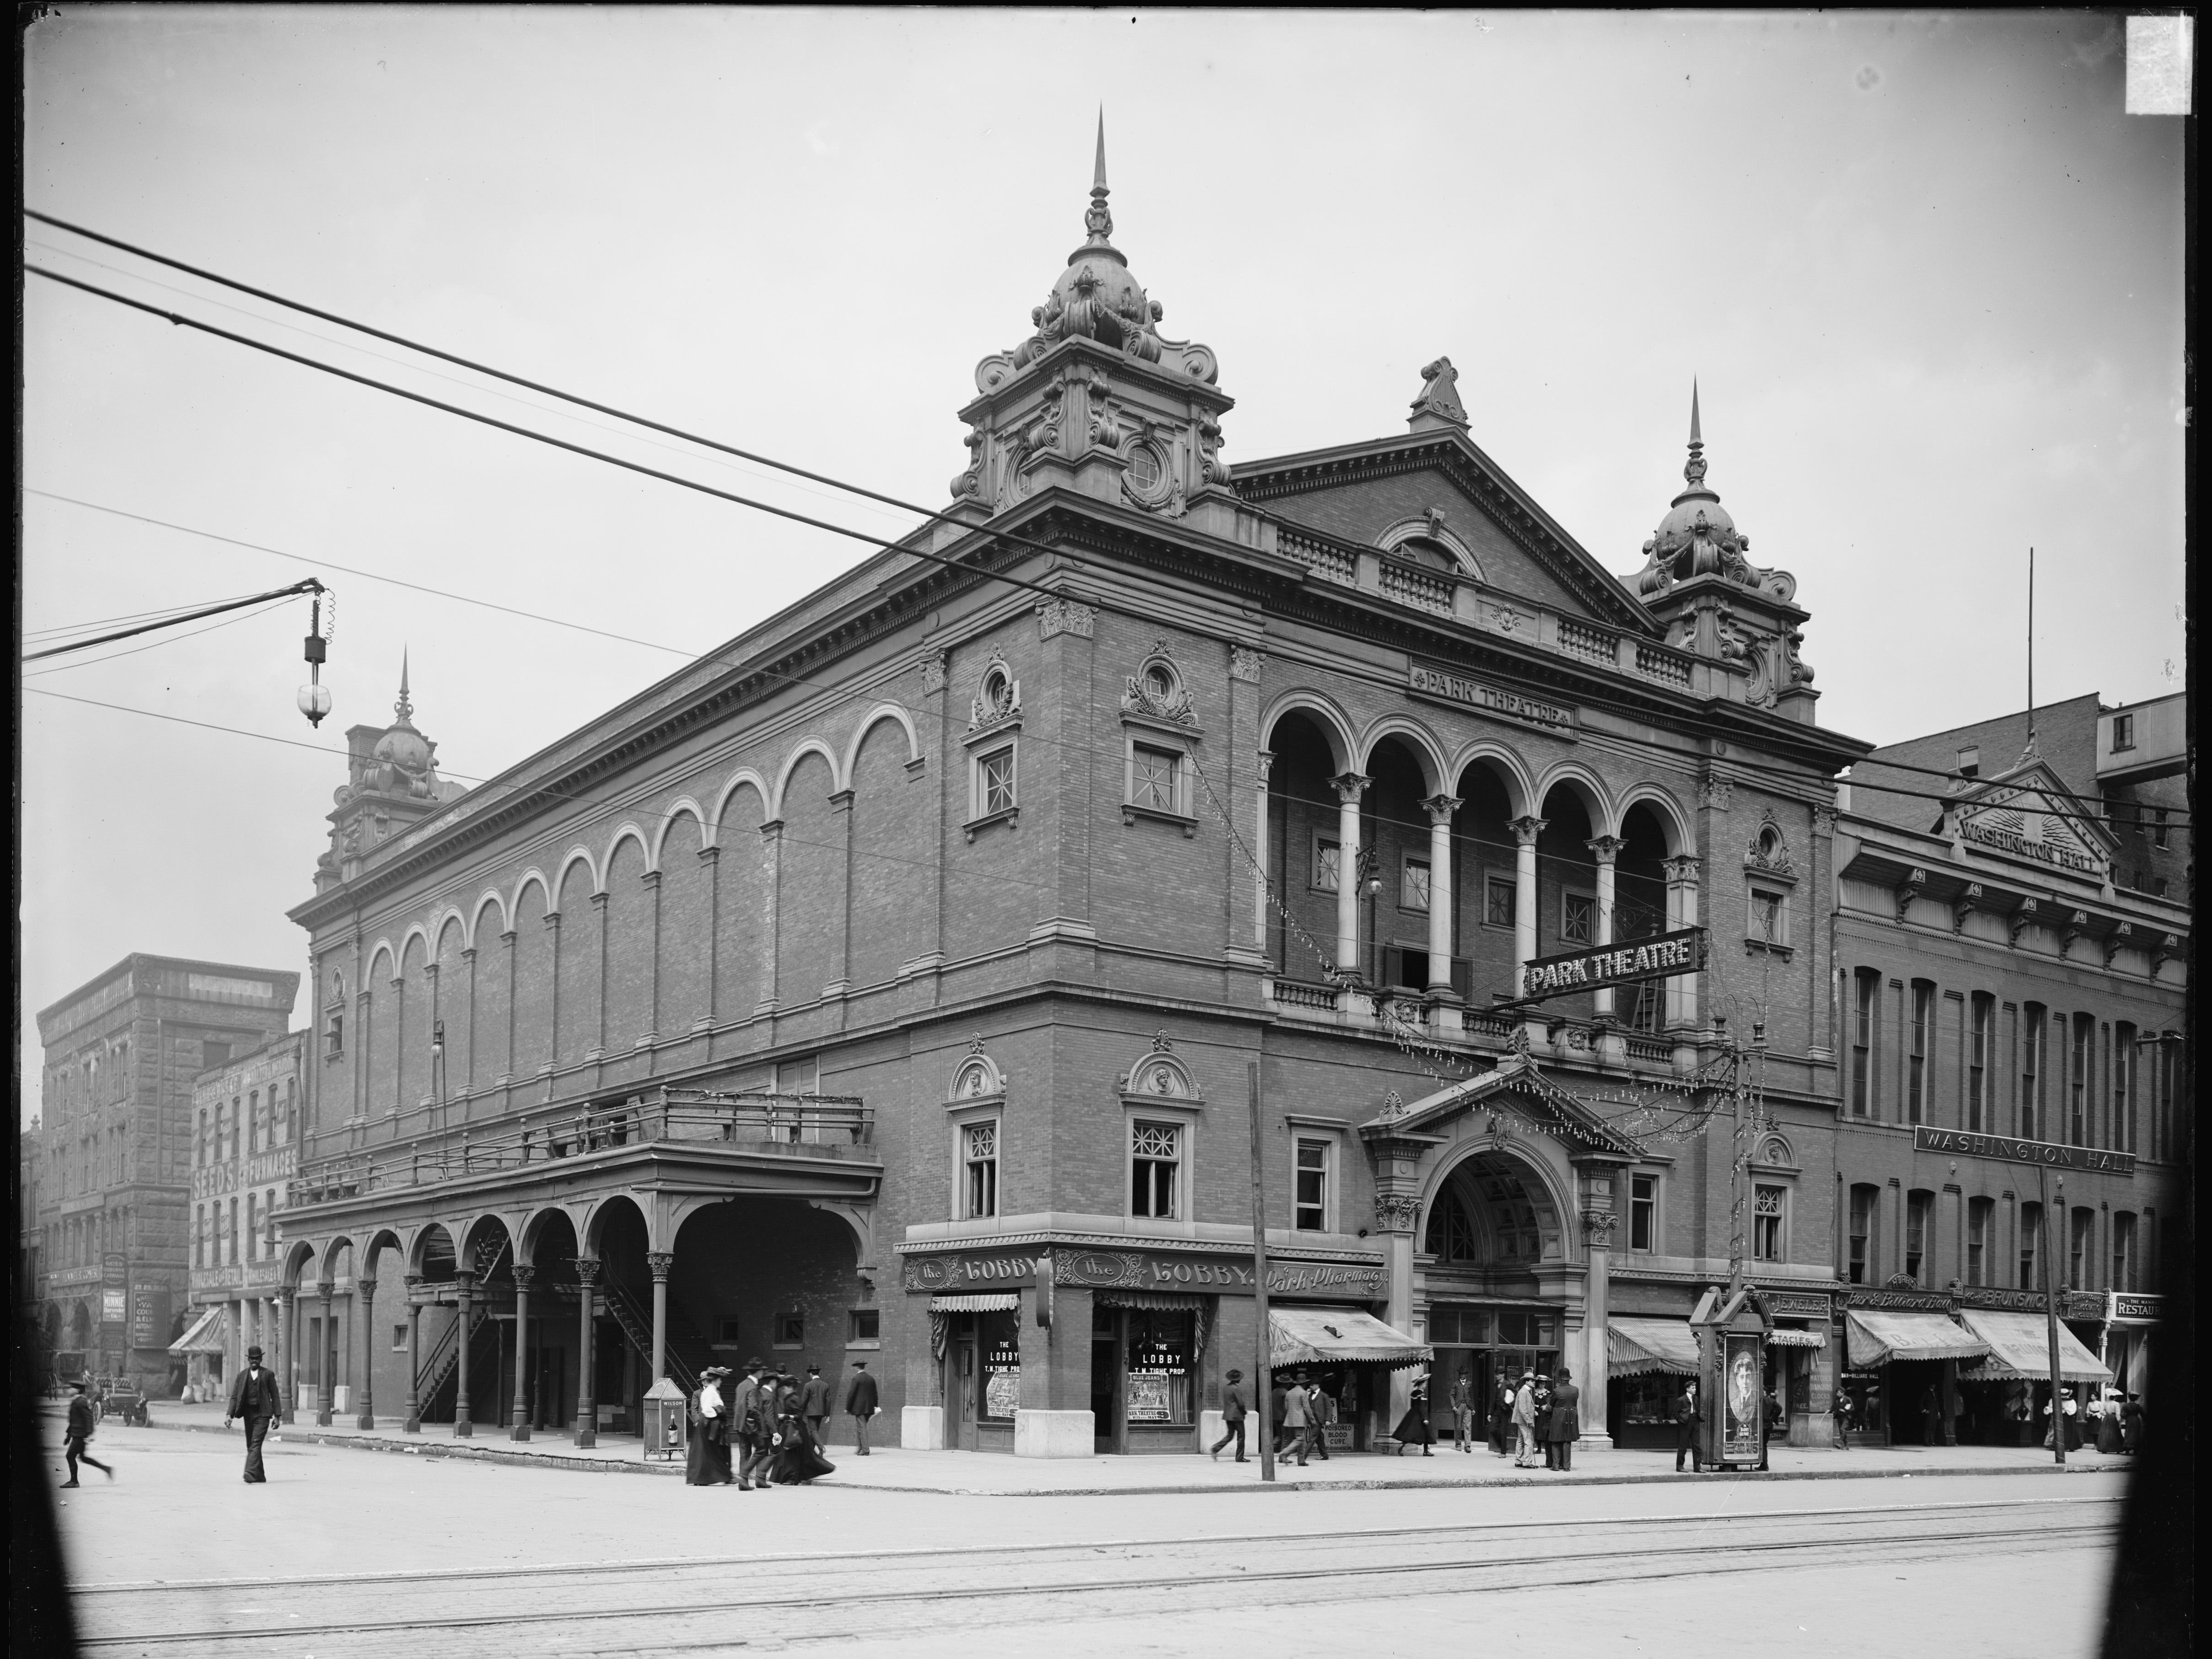 The Park Theater on Washington and Capitol was the city's first building constructed as a theater (named the Metropolitan in 1858). The date on the photo indicates it was circa 1905.